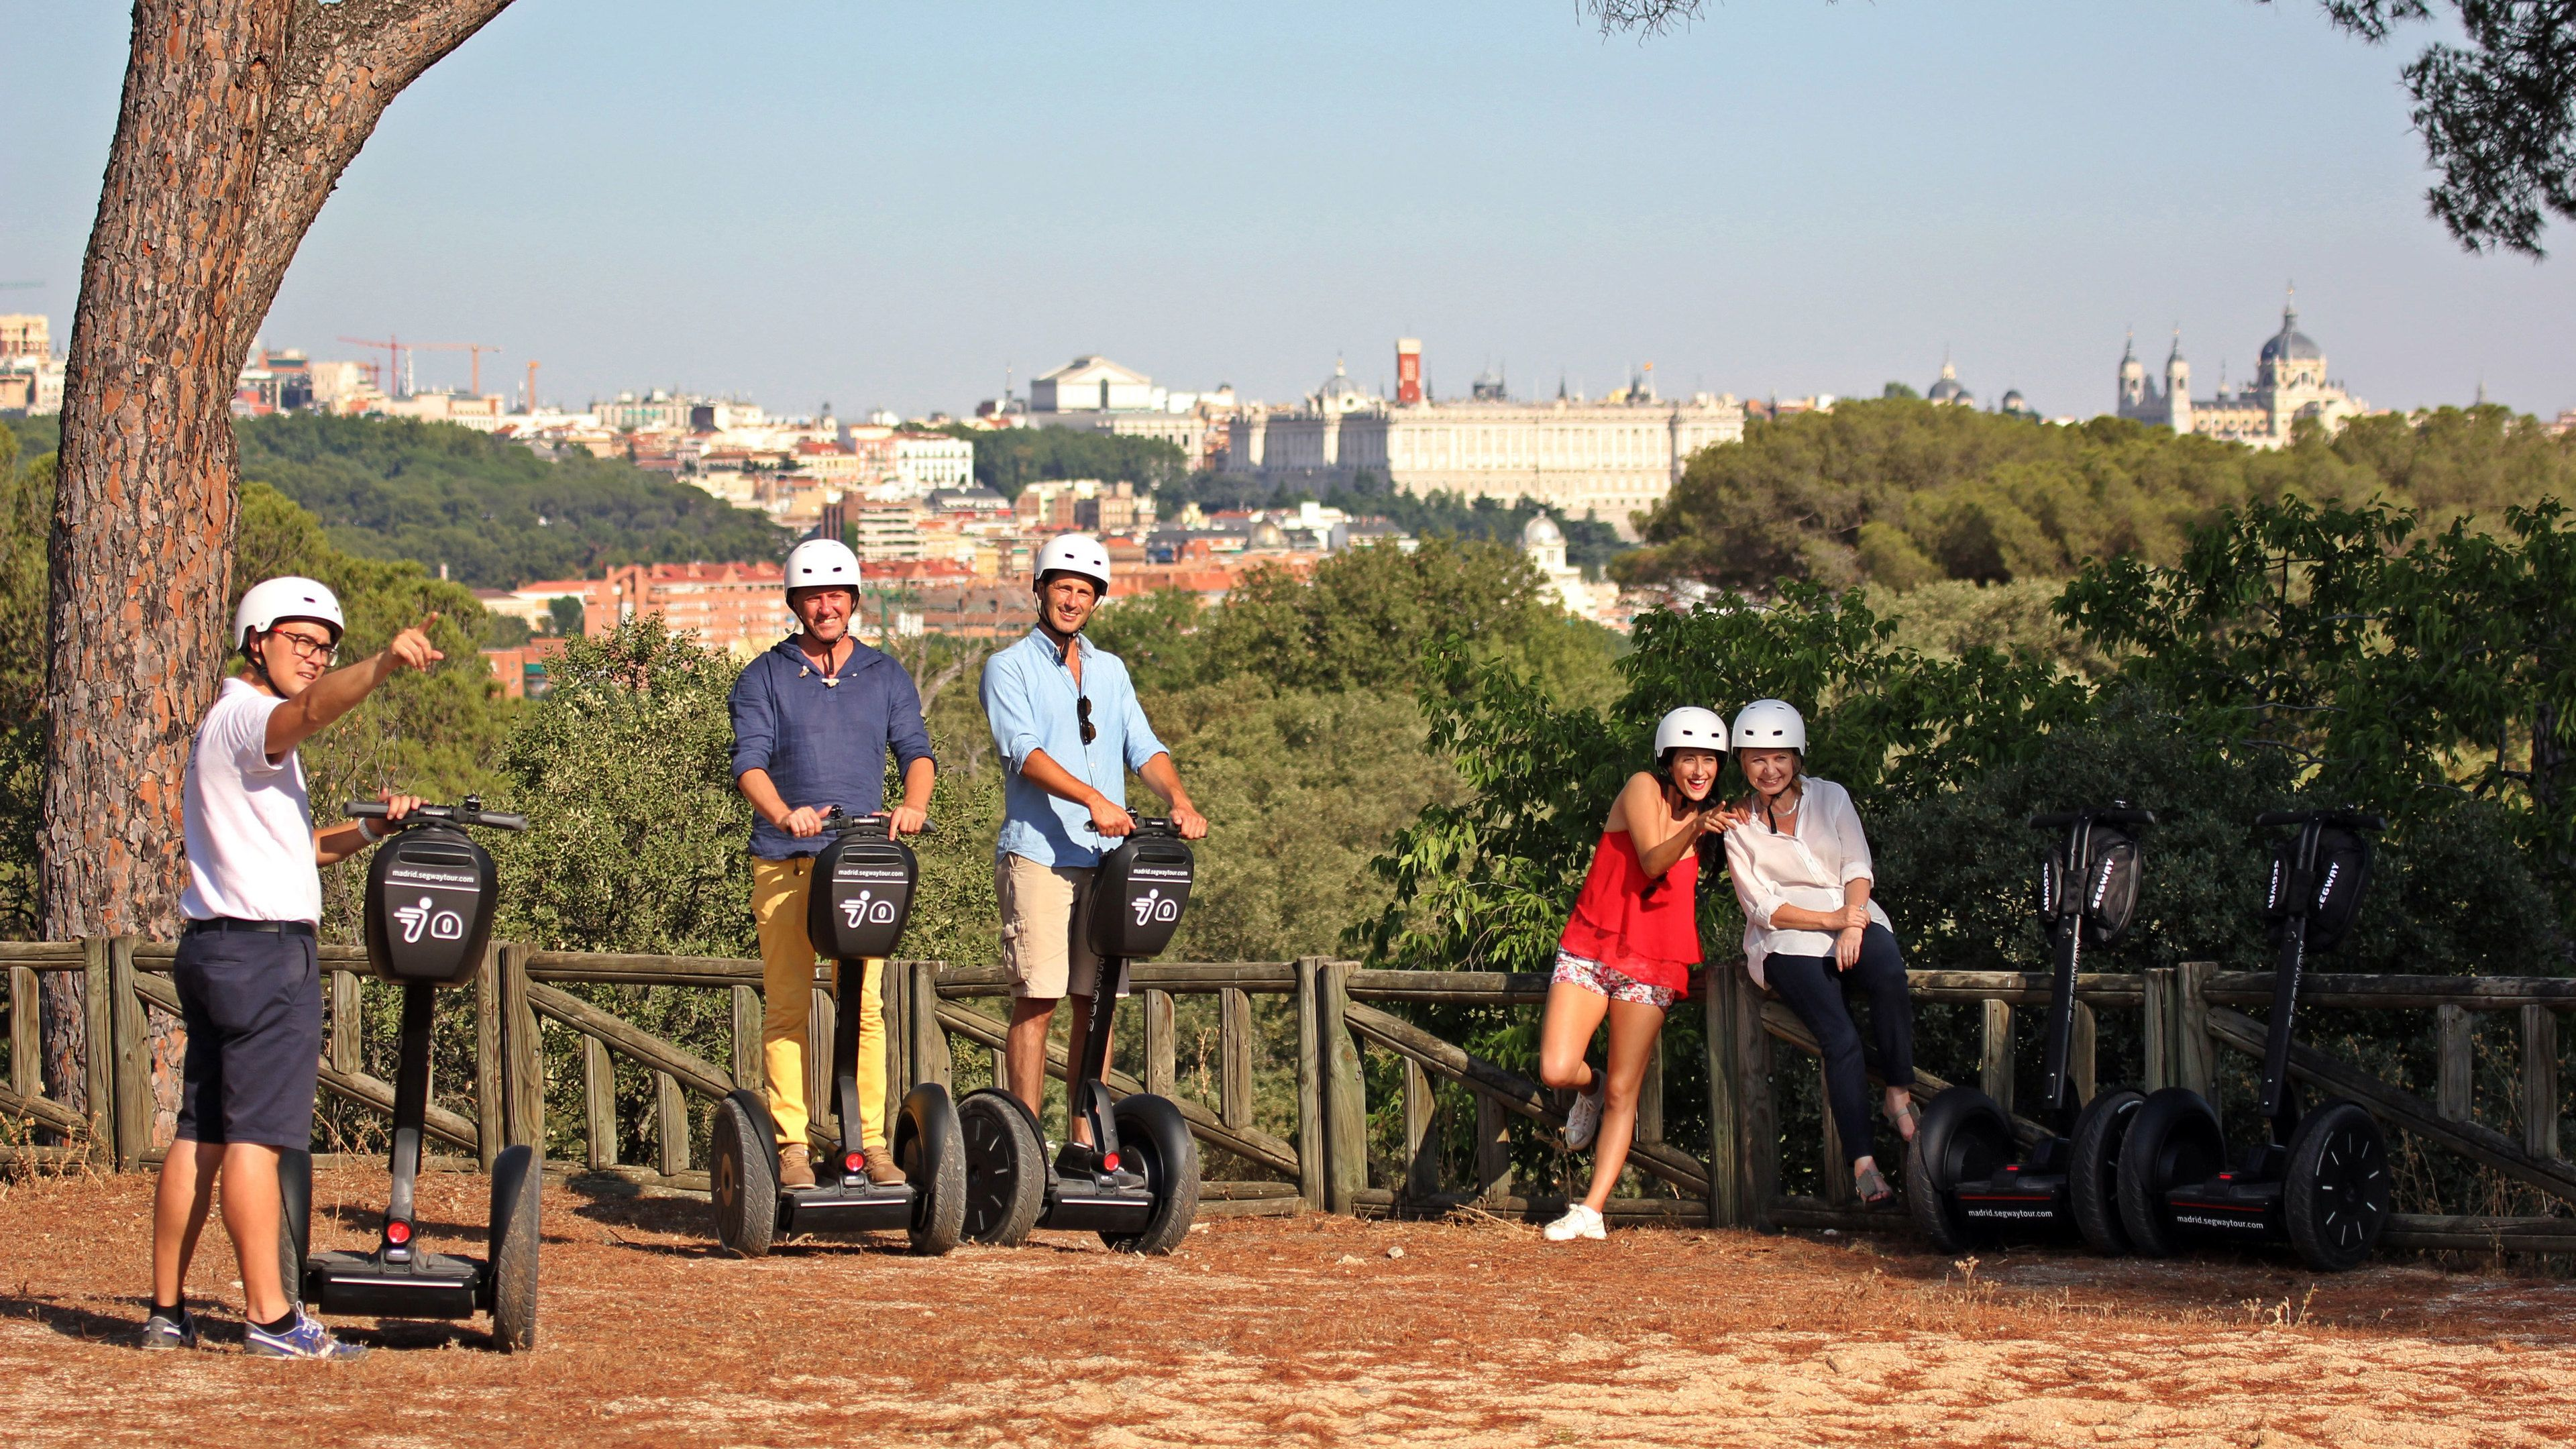 Segway group at a lookout with a view of the city in Madrid